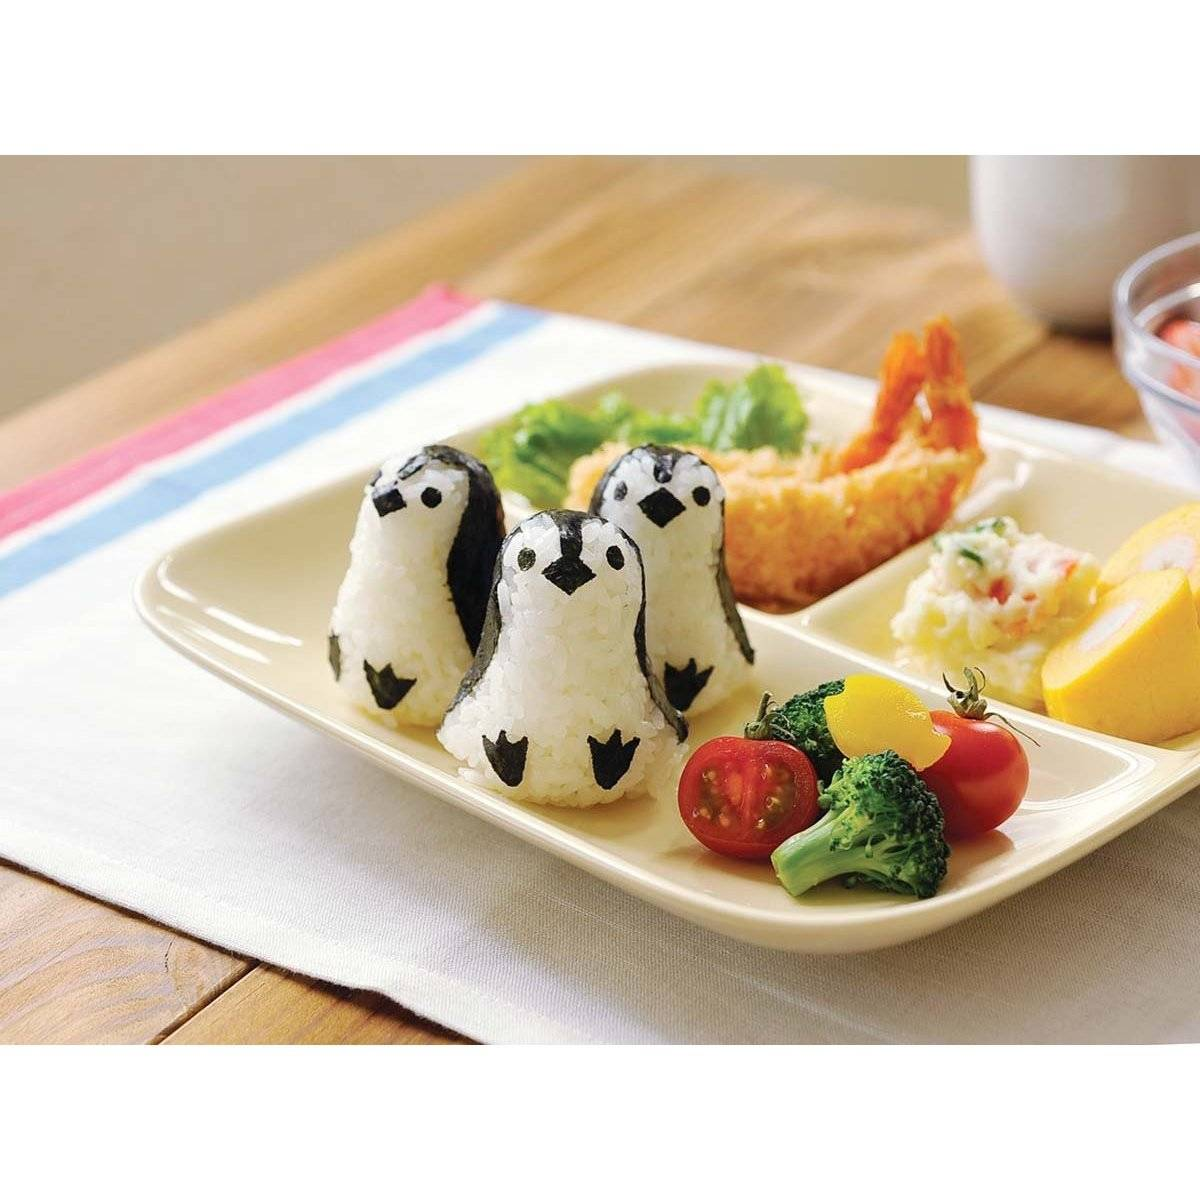 baby 3d penguin bento rice mold and seaweed nori cutter set for e. Black Bedroom Furniture Sets. Home Design Ideas